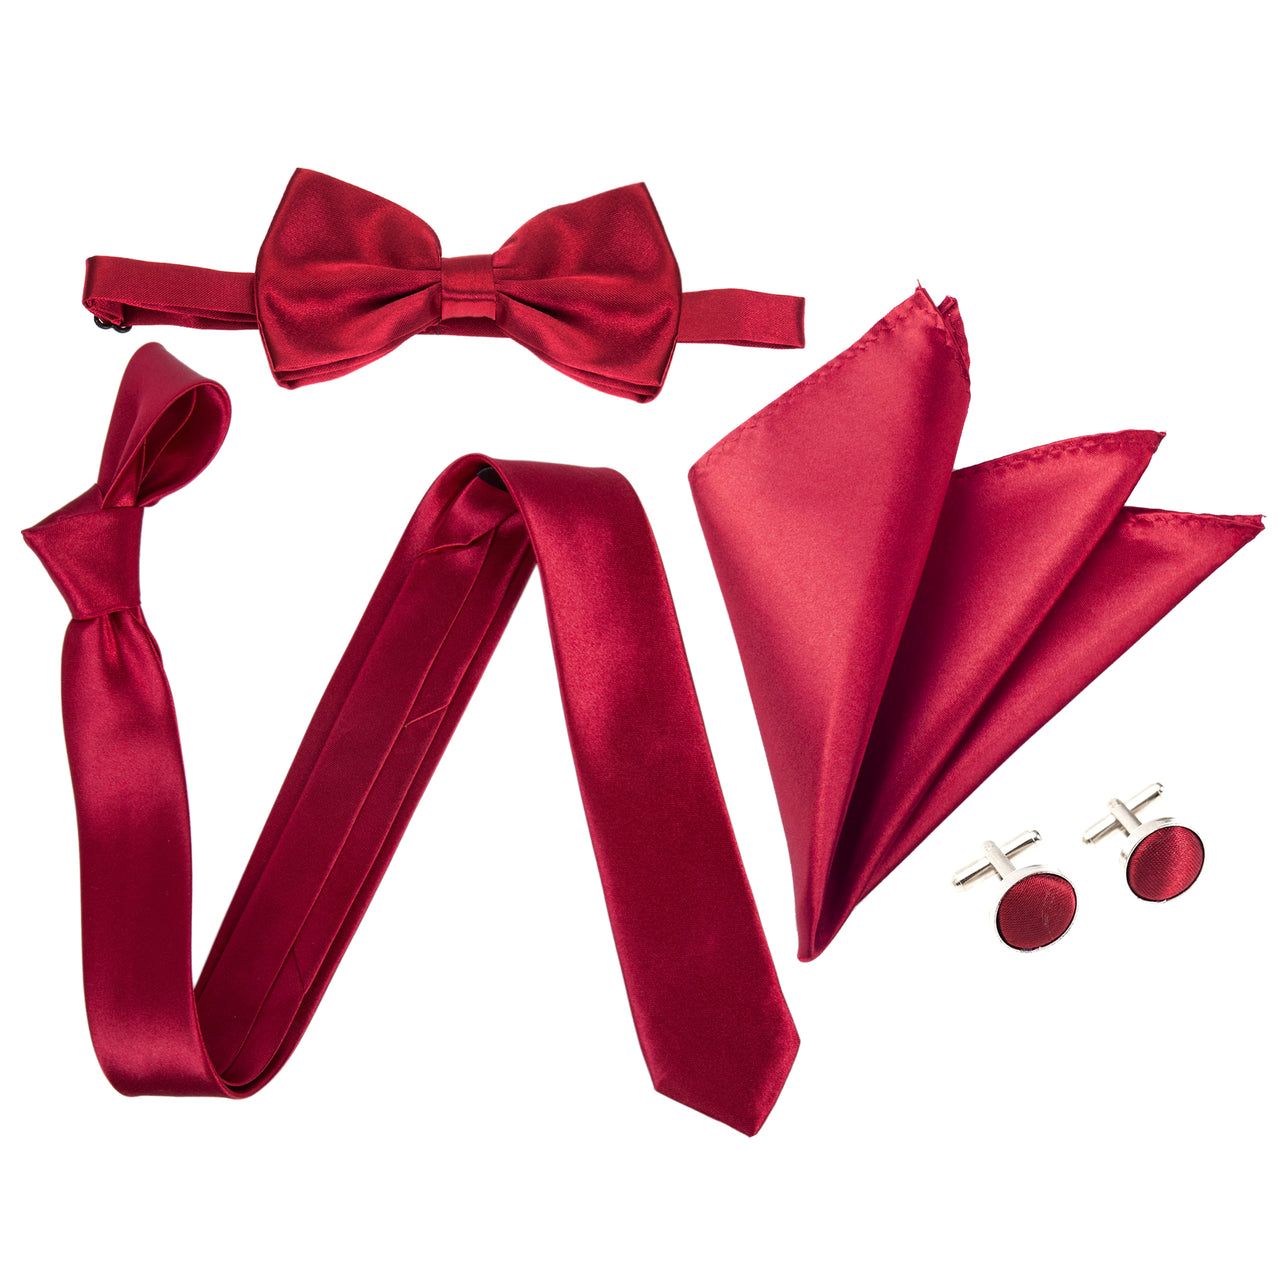 "4pc Tie Set: Slim 2"" Tie, Bow Tie, Handkerchief & Cufflinks - Maroon"